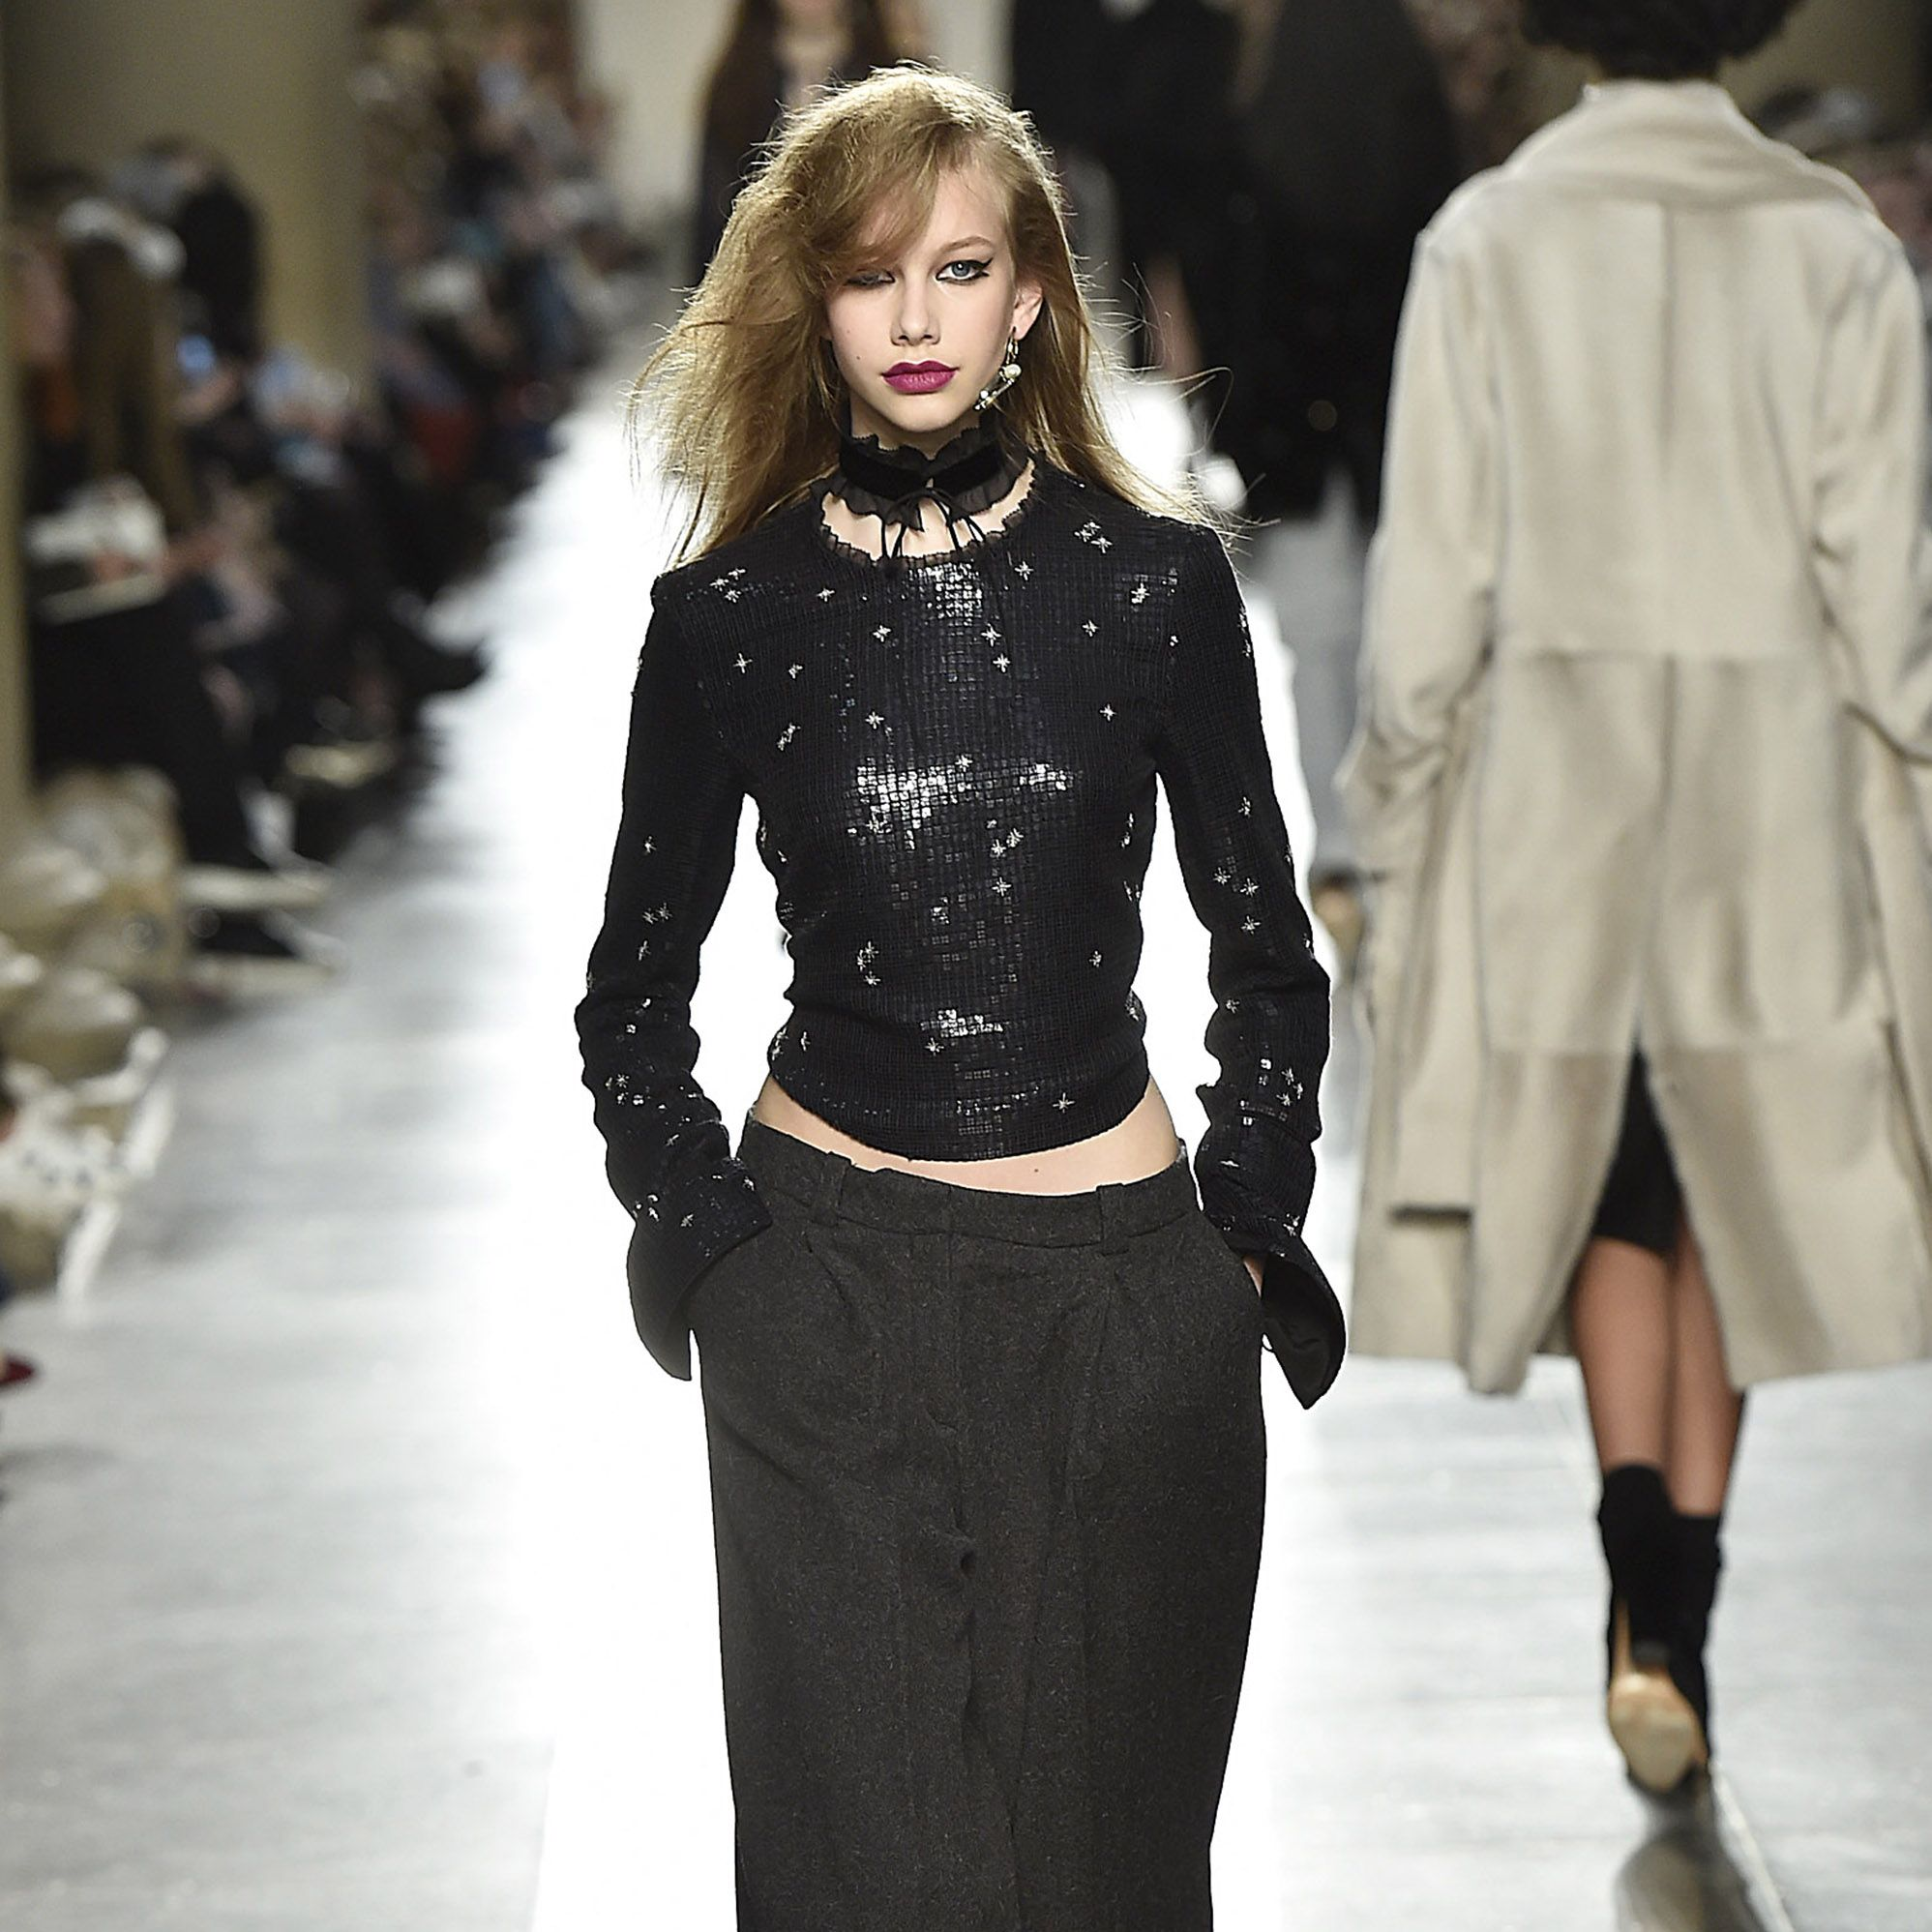 Topshop Unique AW16 at London Fashion Week